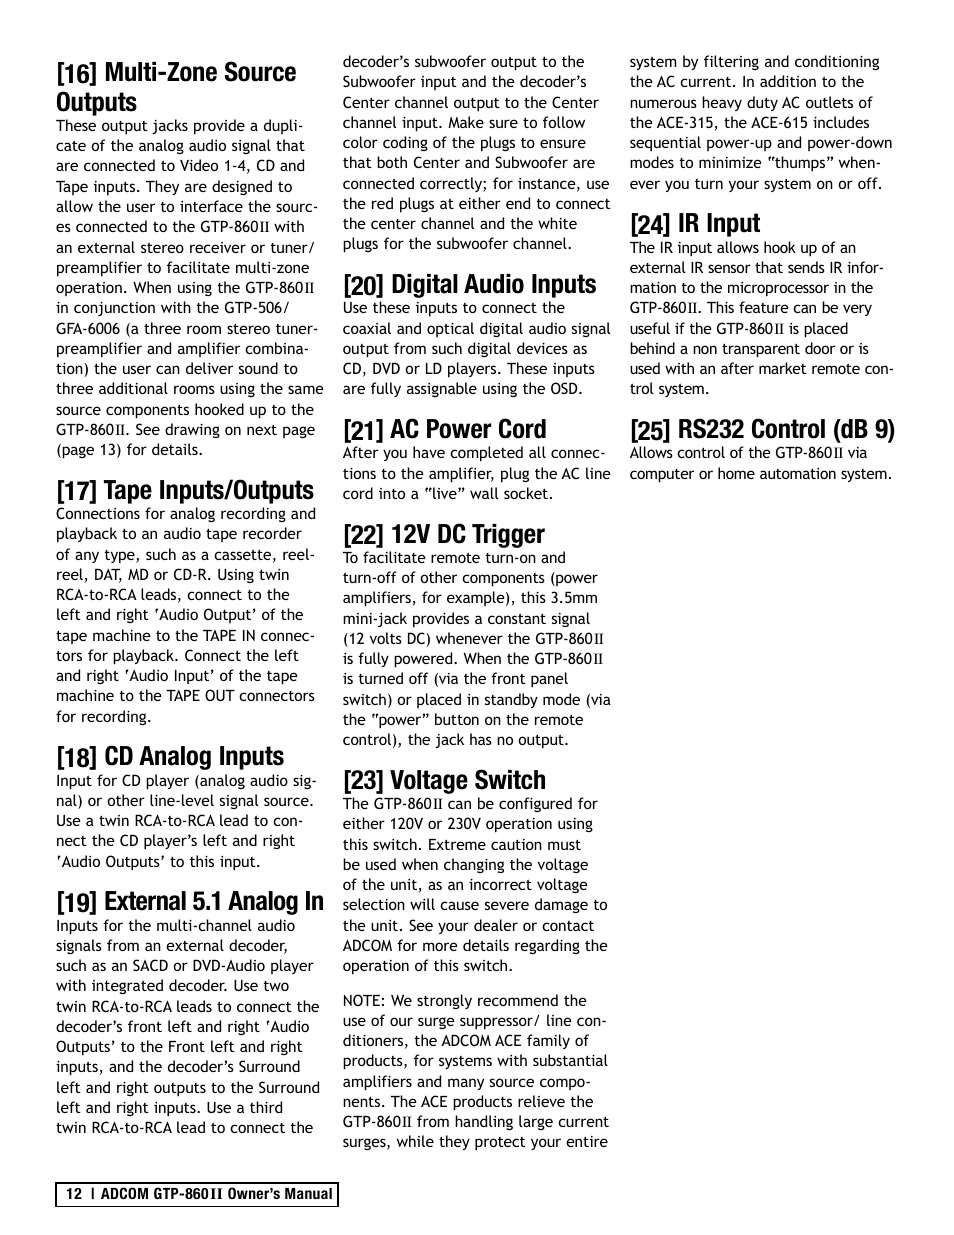 16] multi-zone source outputs, 17] tape inputs/outputs, 18] cd analog  inputs | Adcom GTP-860II User Manual | Page 12 / 32